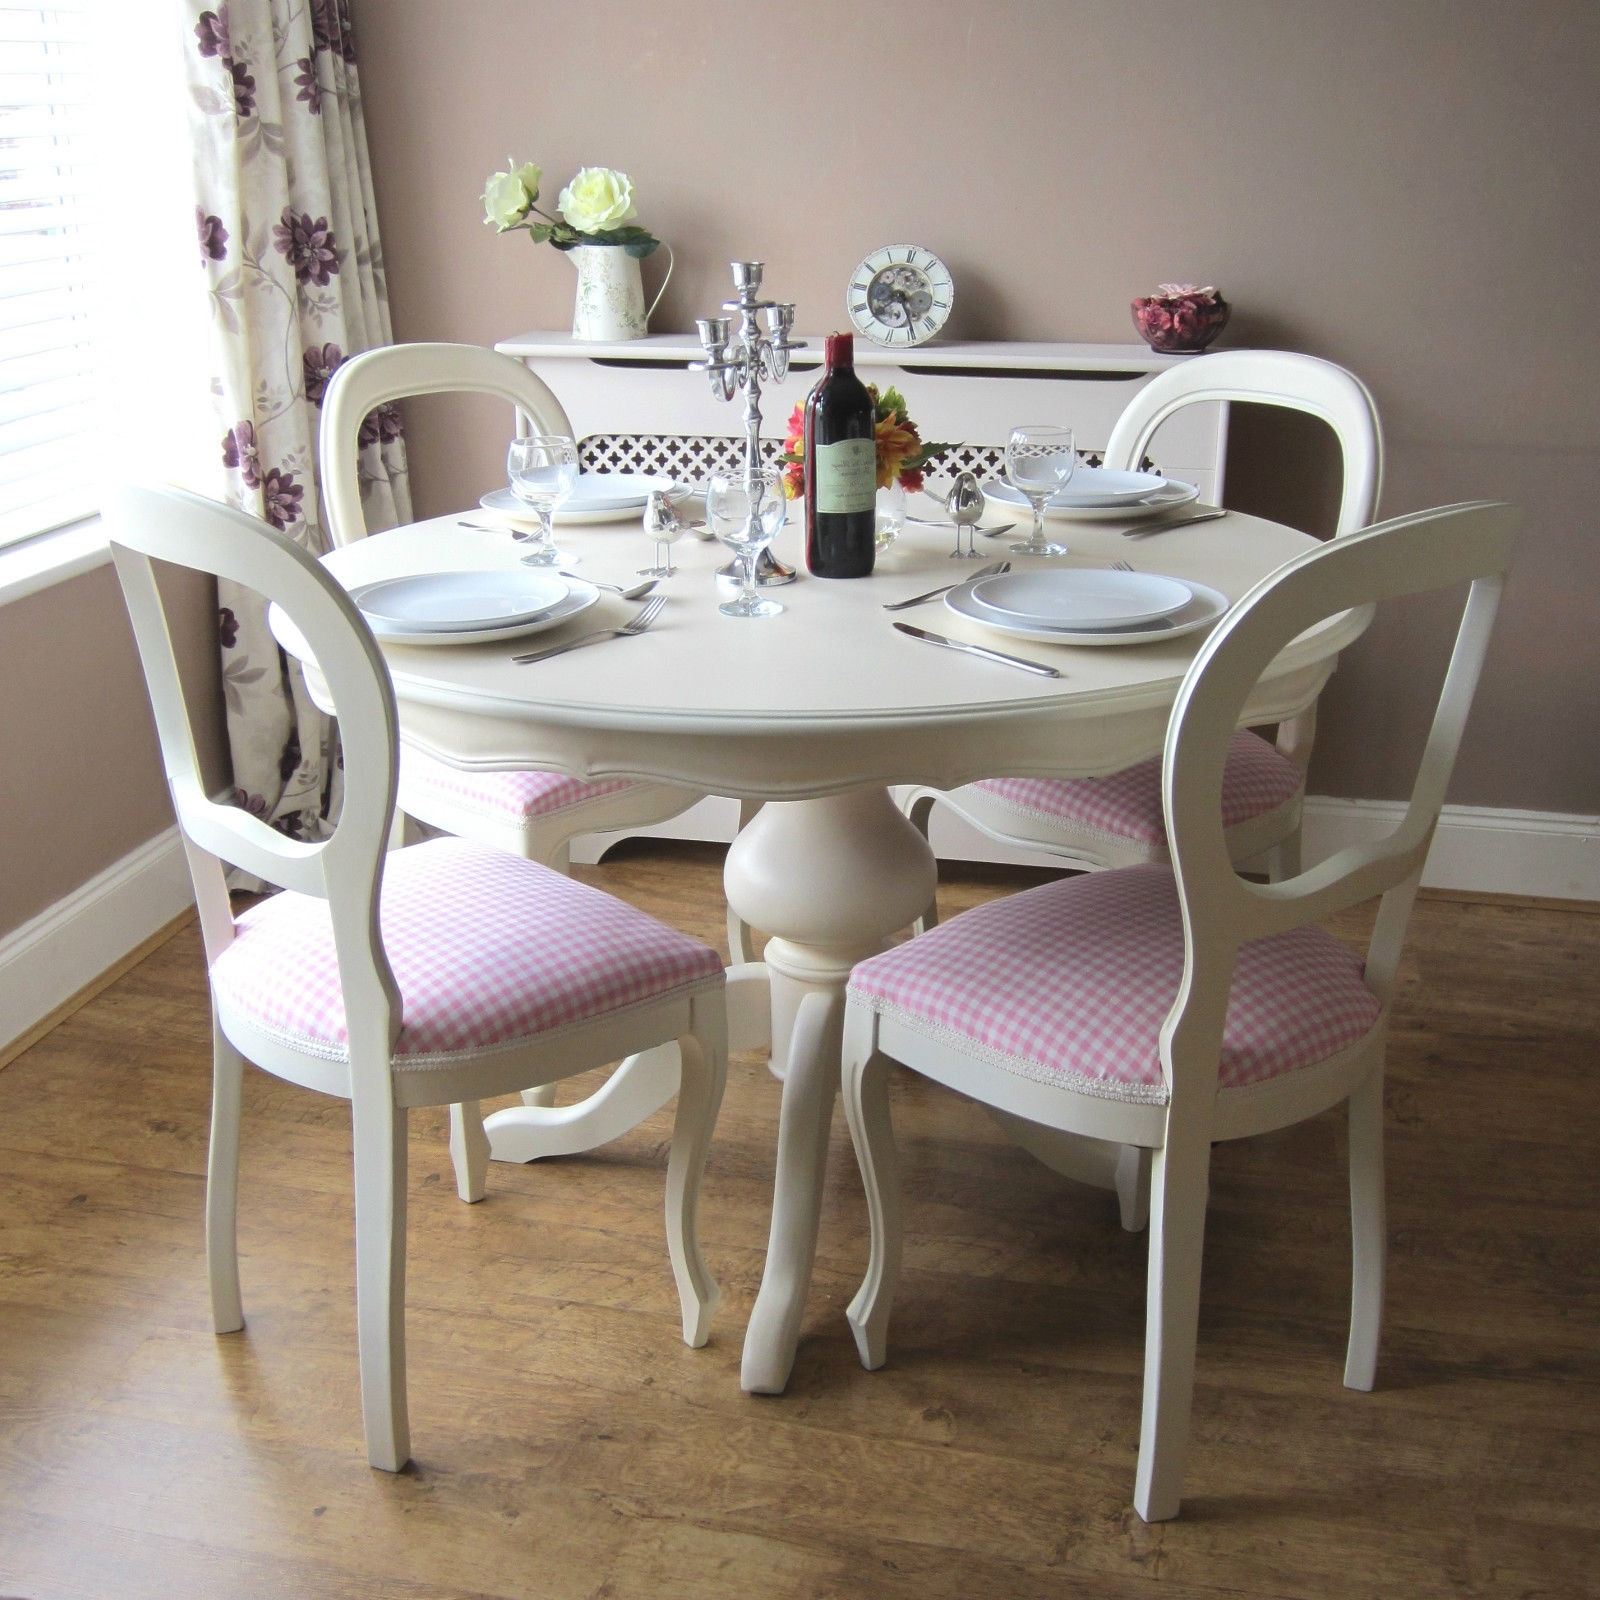 Cheap Dining Tables And Chairs With Fashionable Shabby Chic Table And Chairs (View 12 of 25)